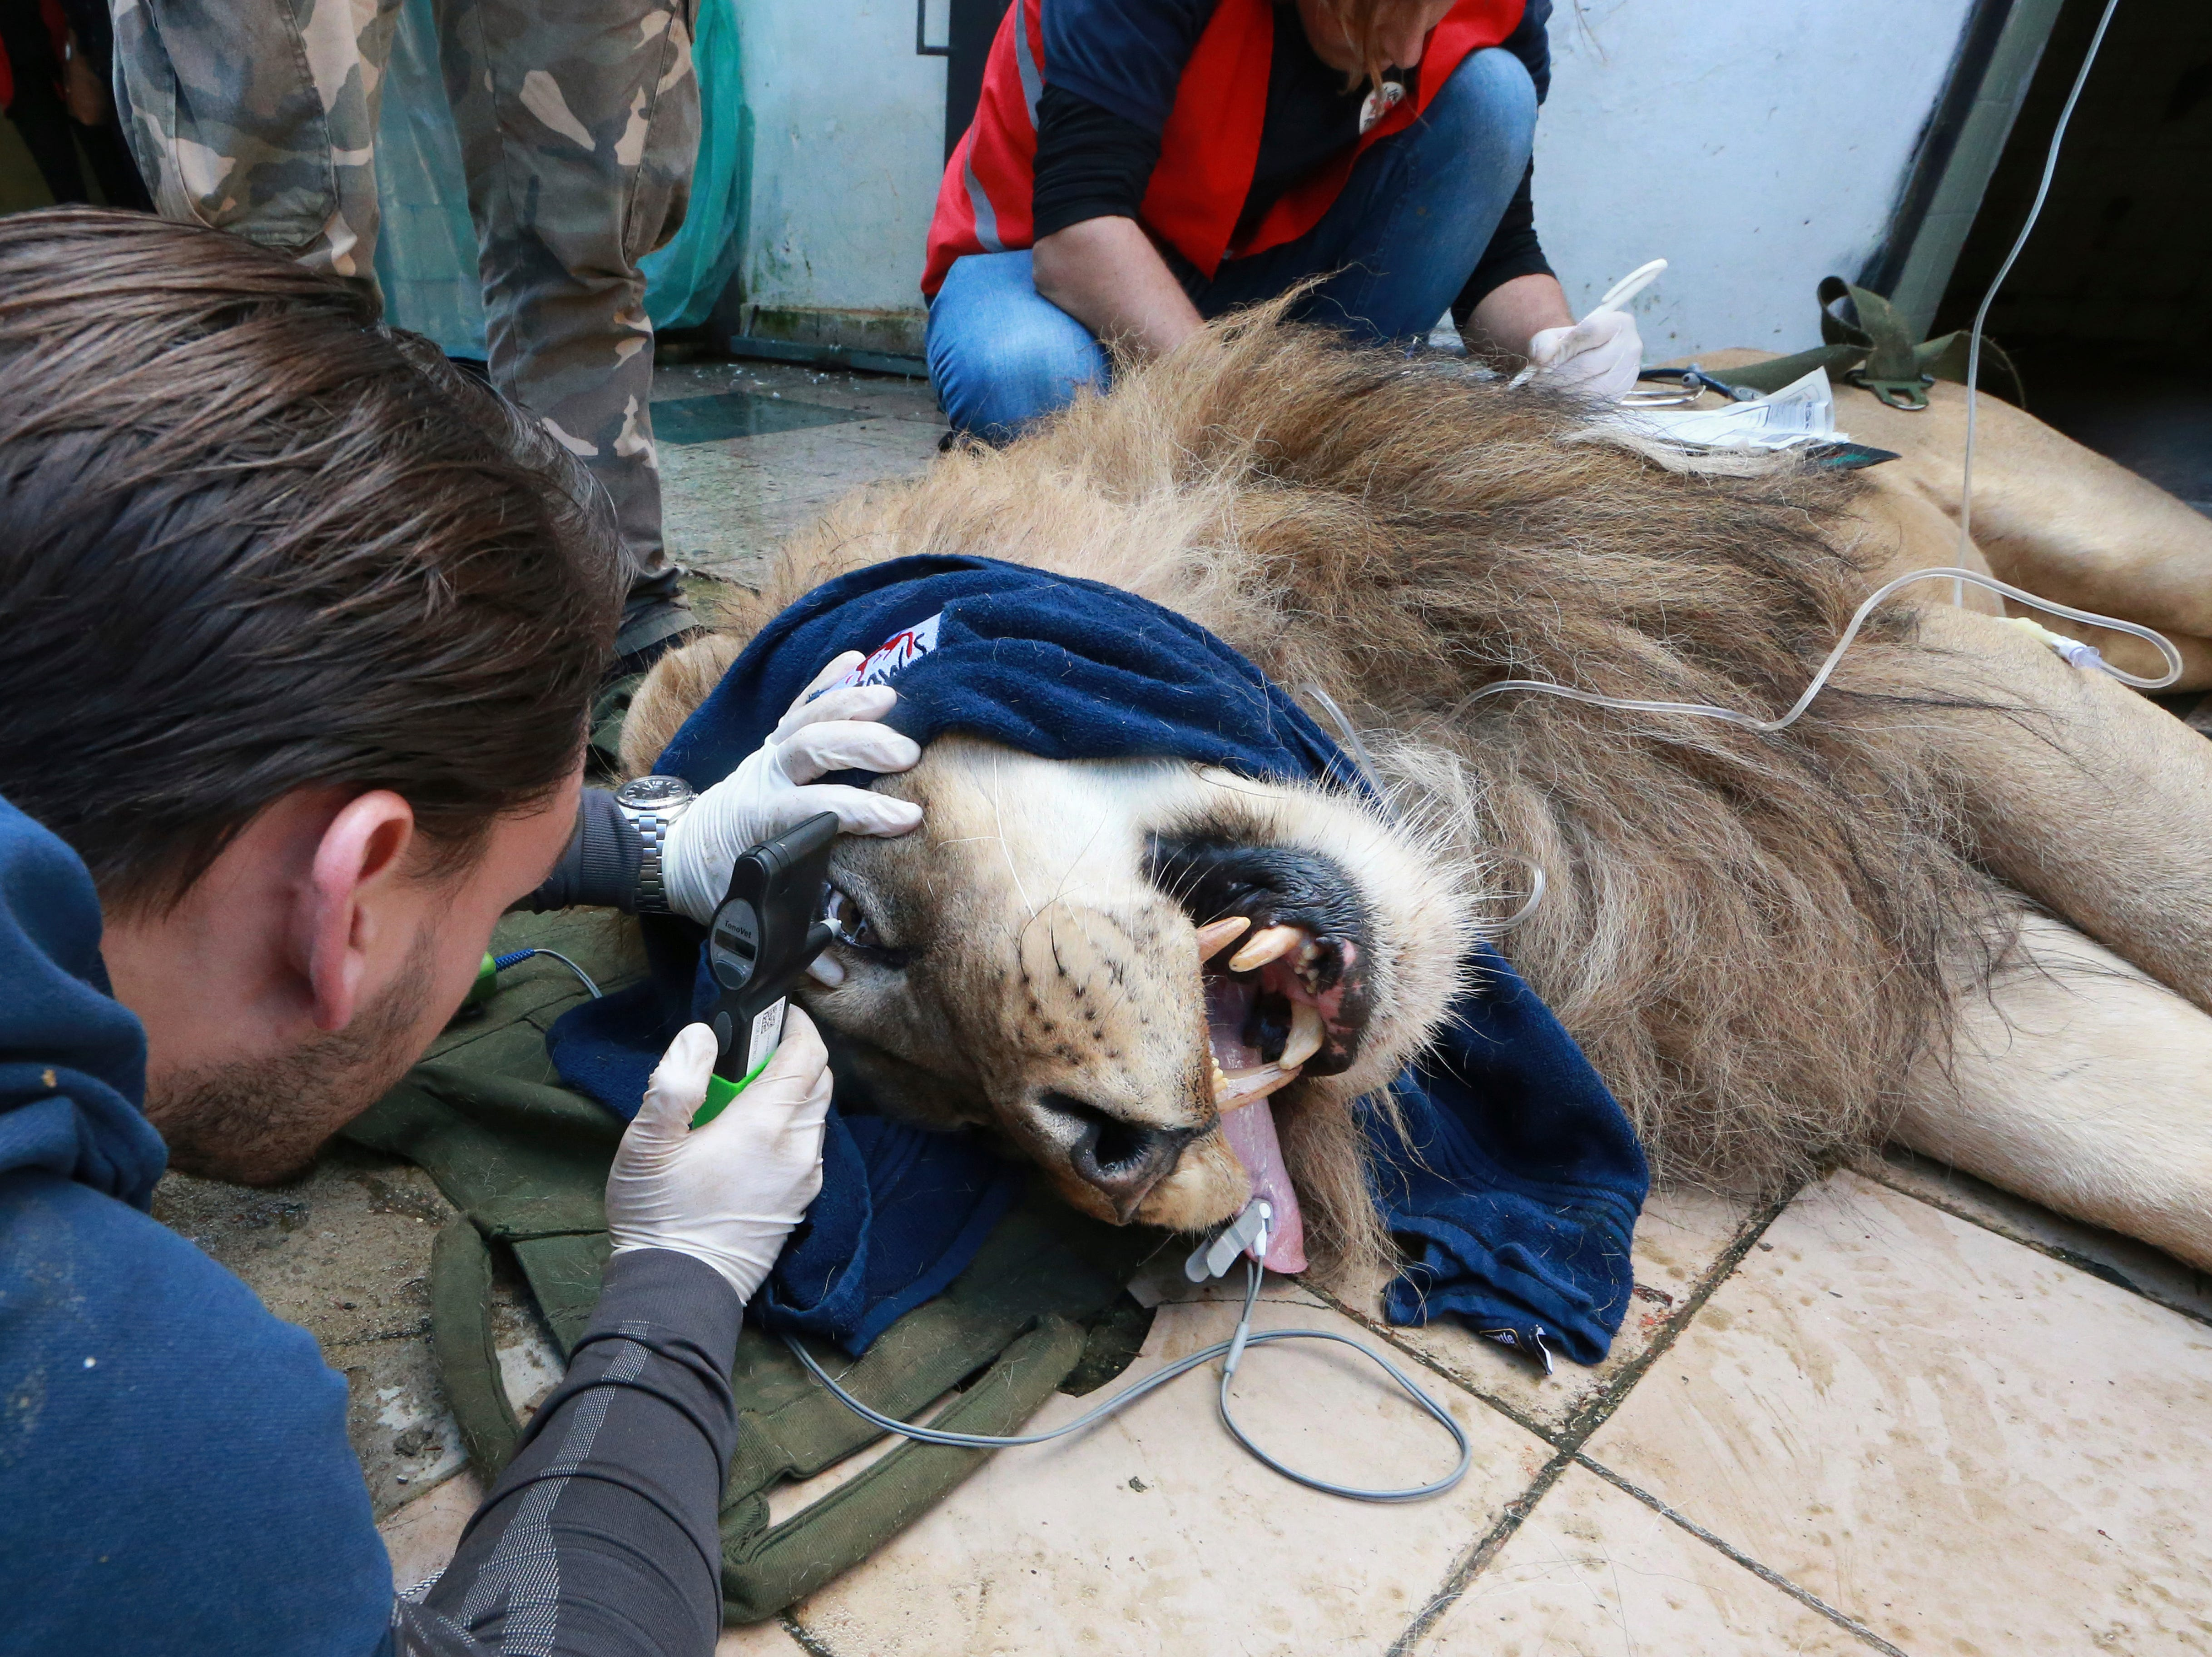 Veterinarian Marc Goelkel of the international animal welfare group Four Paws inspects Bobby, a sedated lion, at Tirana Zoo, Albania on Tuesday, May 7, 2019. Bobby is one of three lions, Lenci, Bobby and Zhaku, at the Tirana Zoo that will be transferred to the Felida Big Cat Centre in the Netherlands for better conditions.